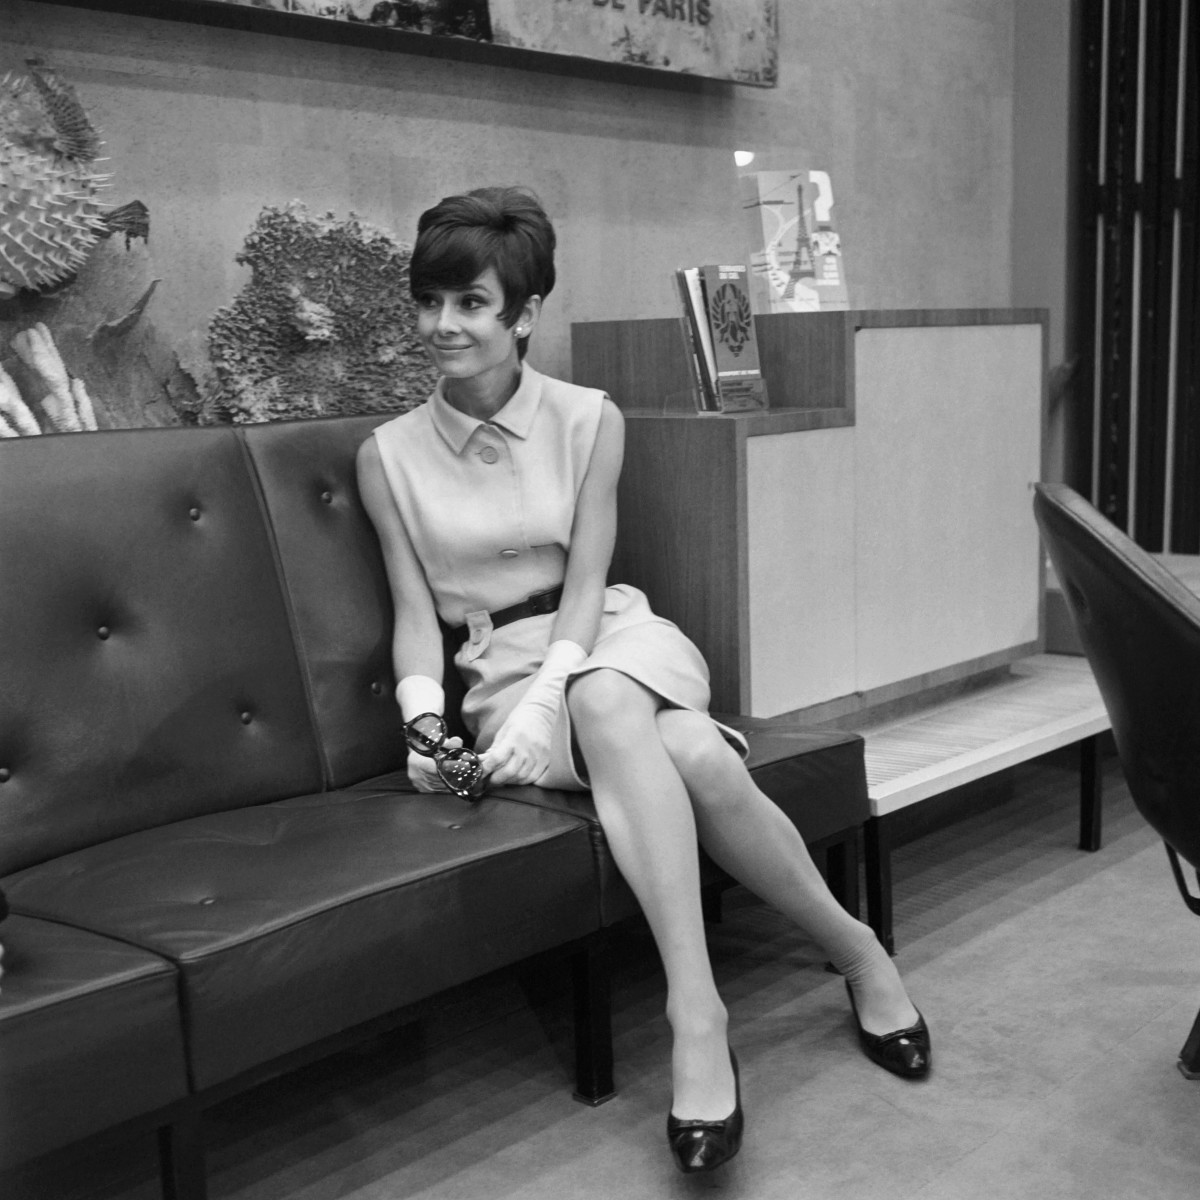 Audrey Hepburn in Givenchy at Orly Airport in 1965.